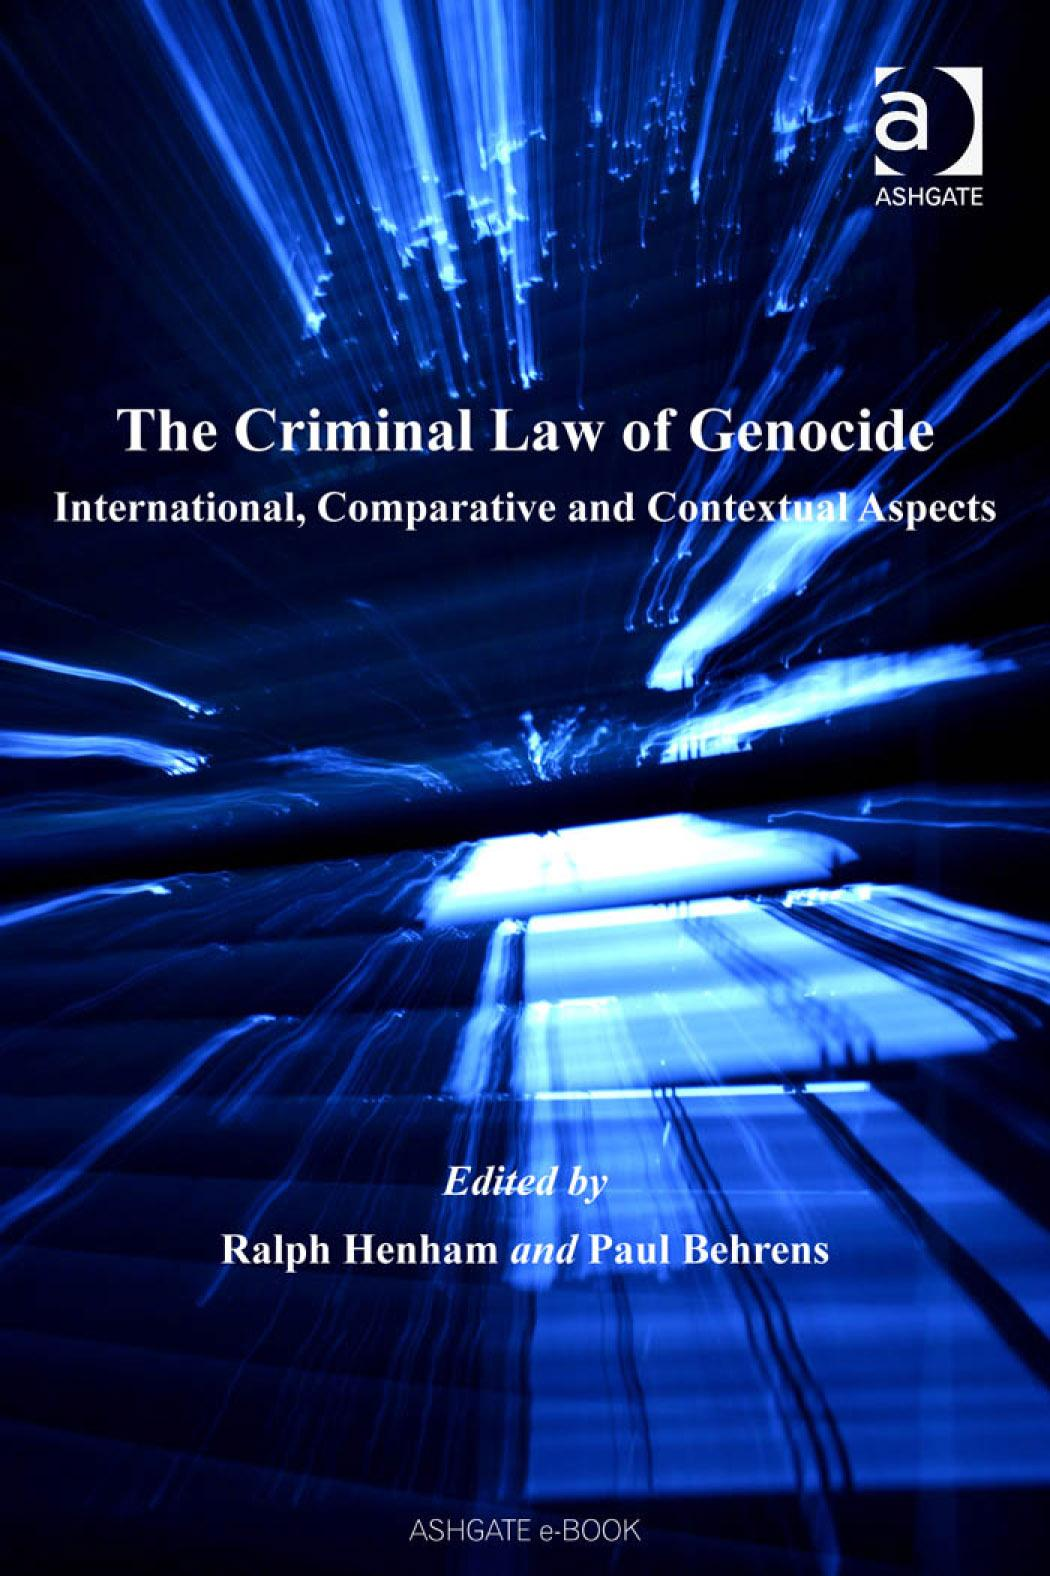 Criminal Law of Genocide, The: International, Comparative and Contextual Aspects International and Comparative Criminal Justice